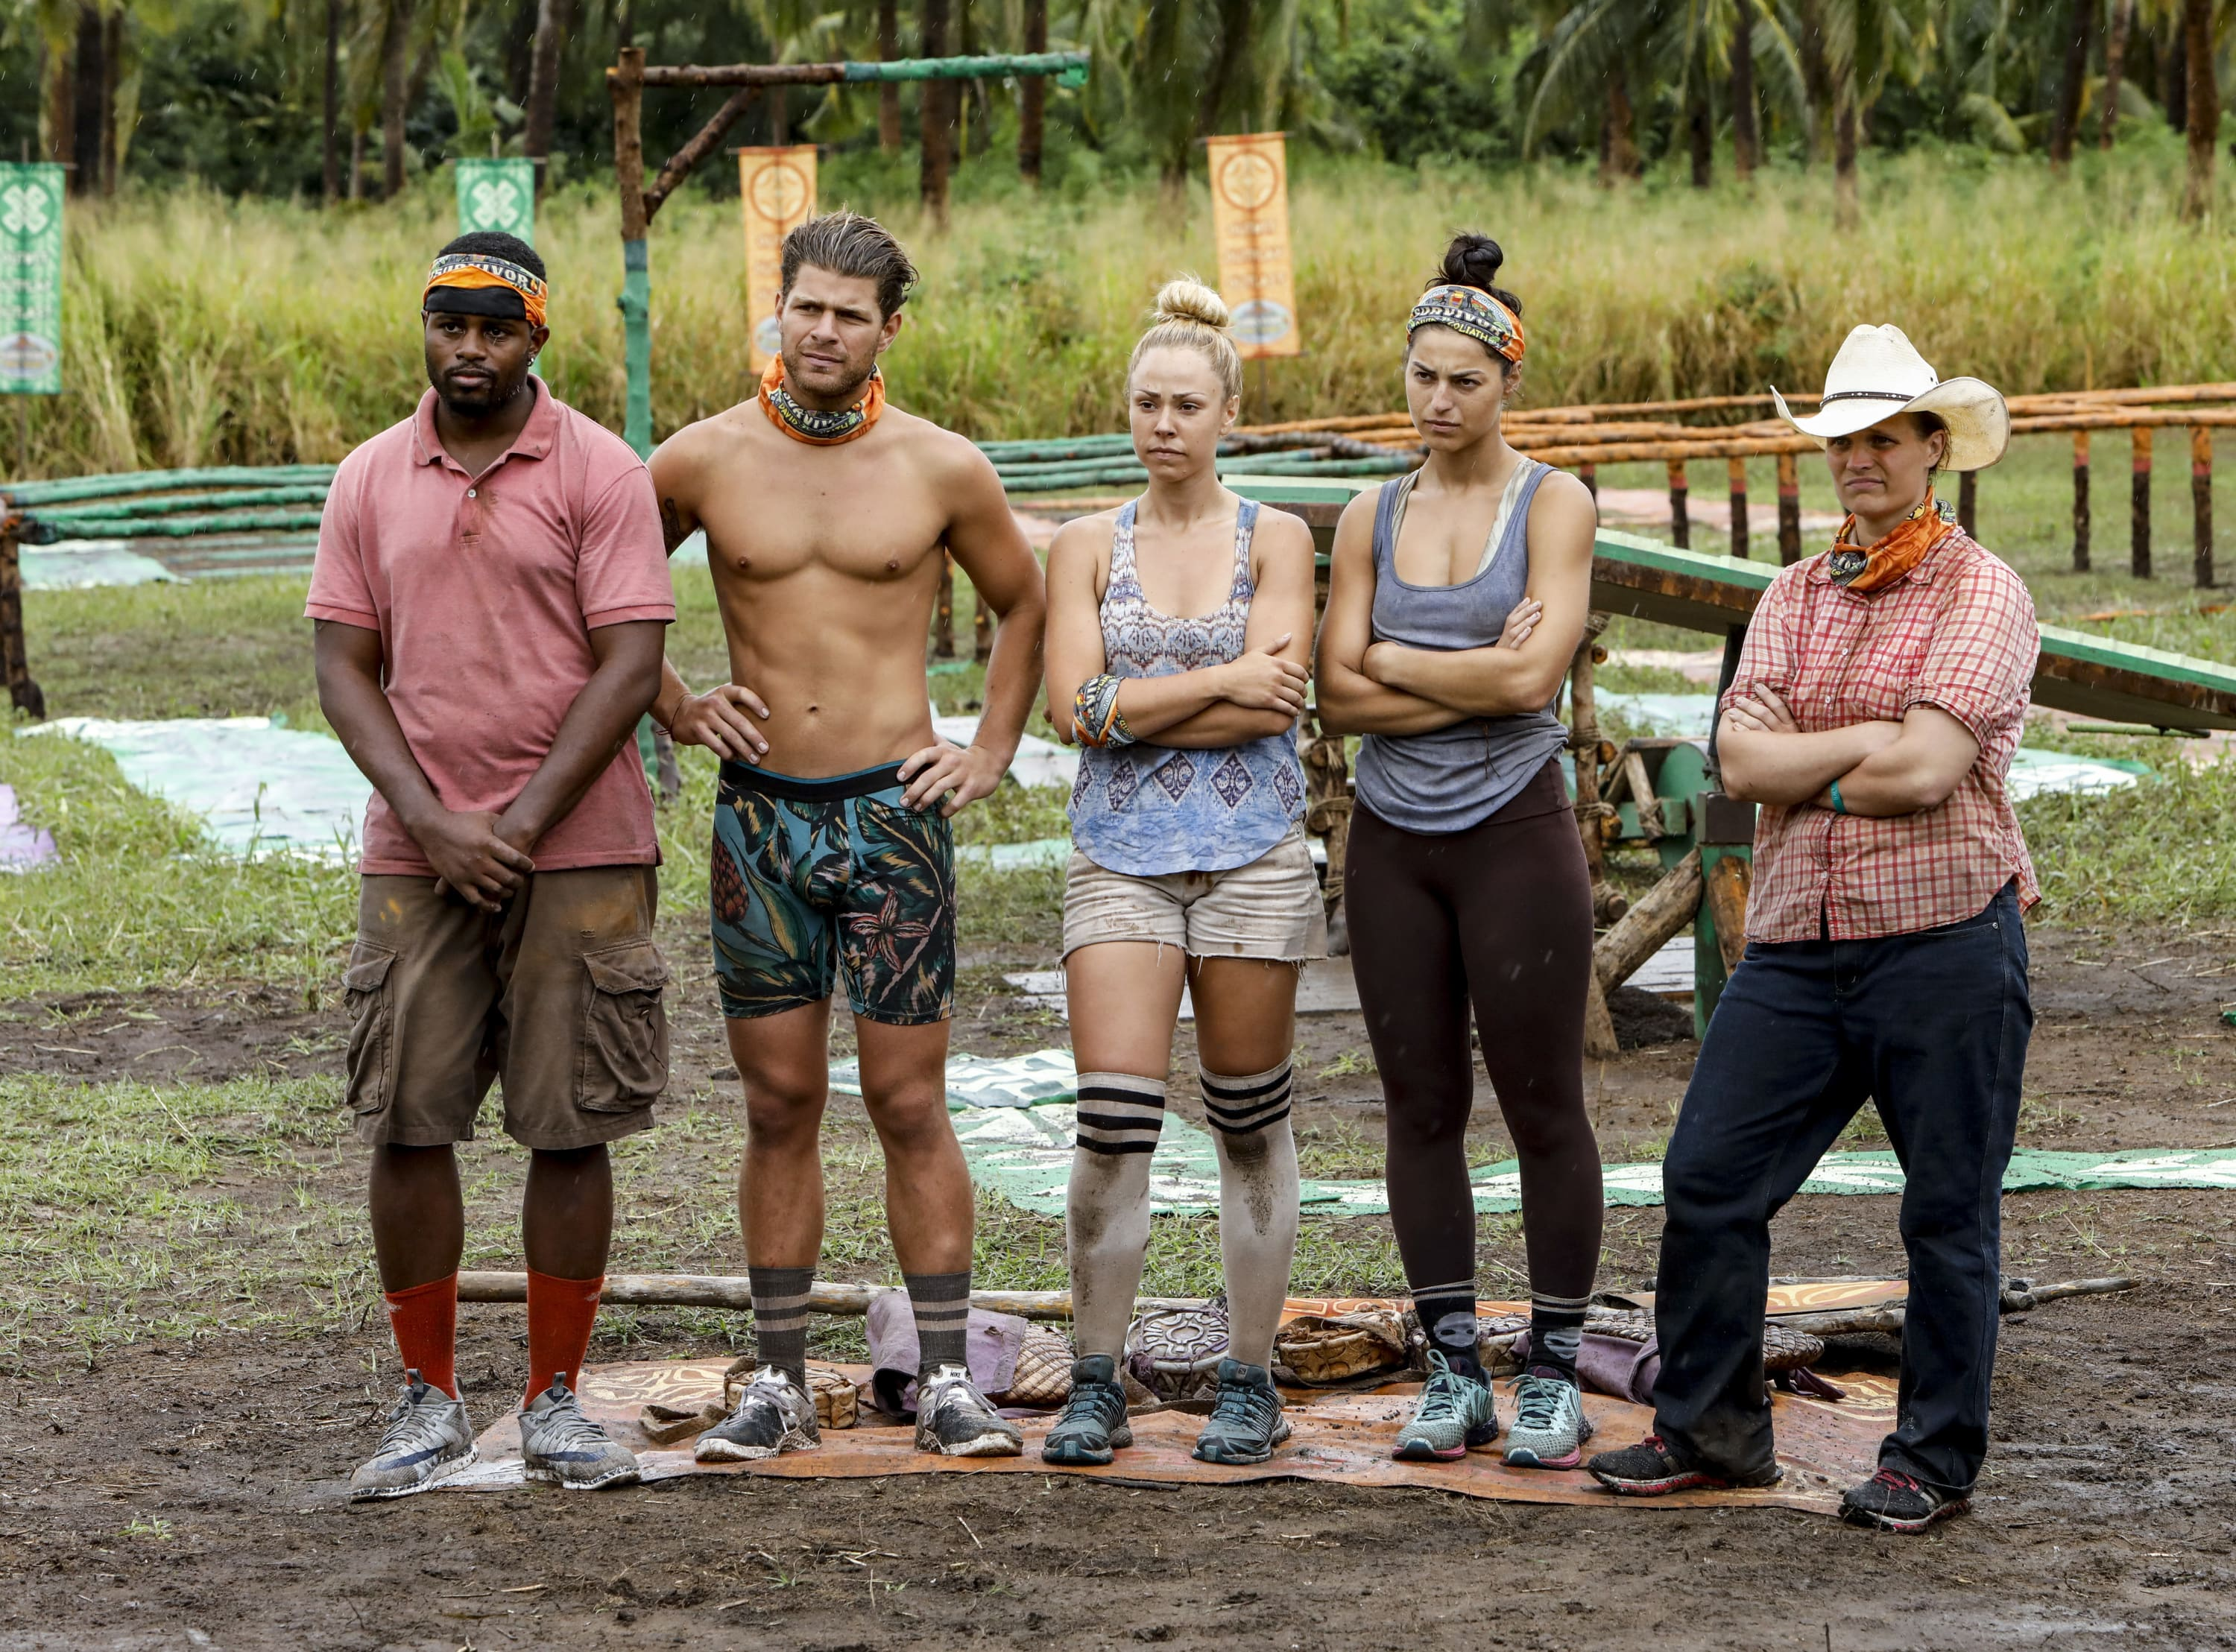 Davie Rickenbacker, Alec Merlino, Kara Kay, Angelina Keeley and Elizabeth Olson on Survivor: David vs. Goliath